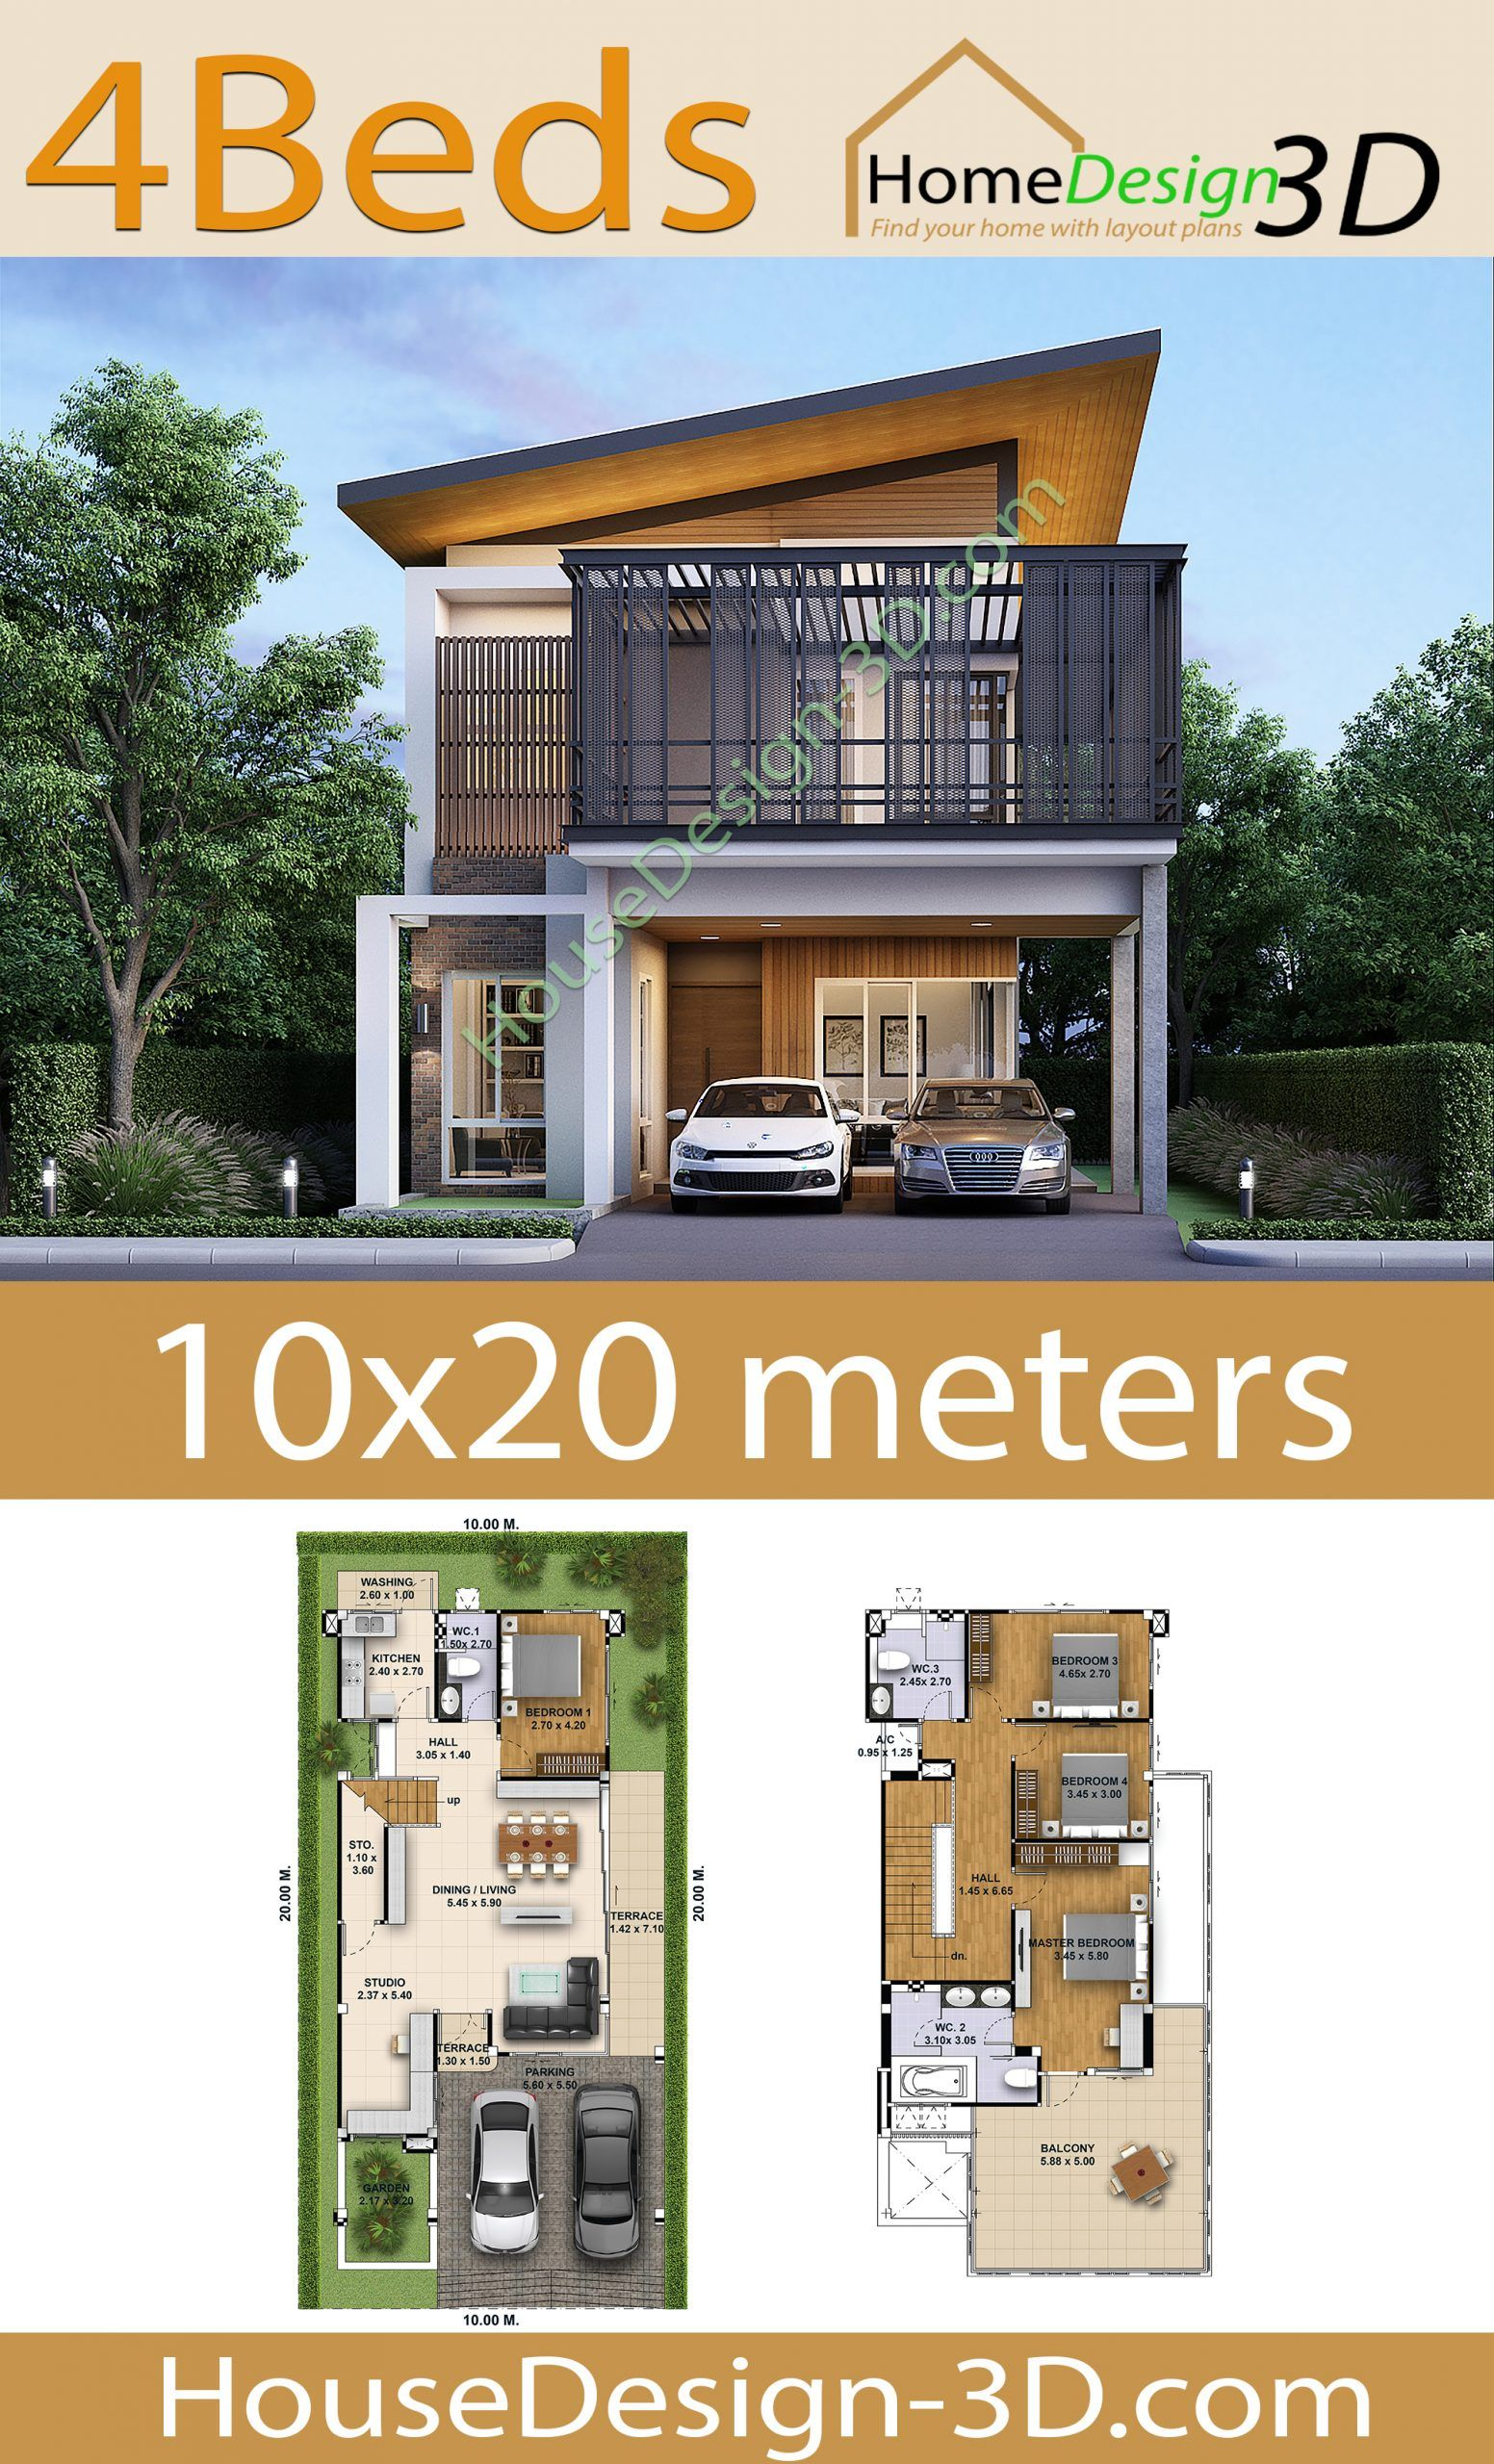 House Design 3d Plot 10x20 with 4 Bedrooms - Tiny House ...